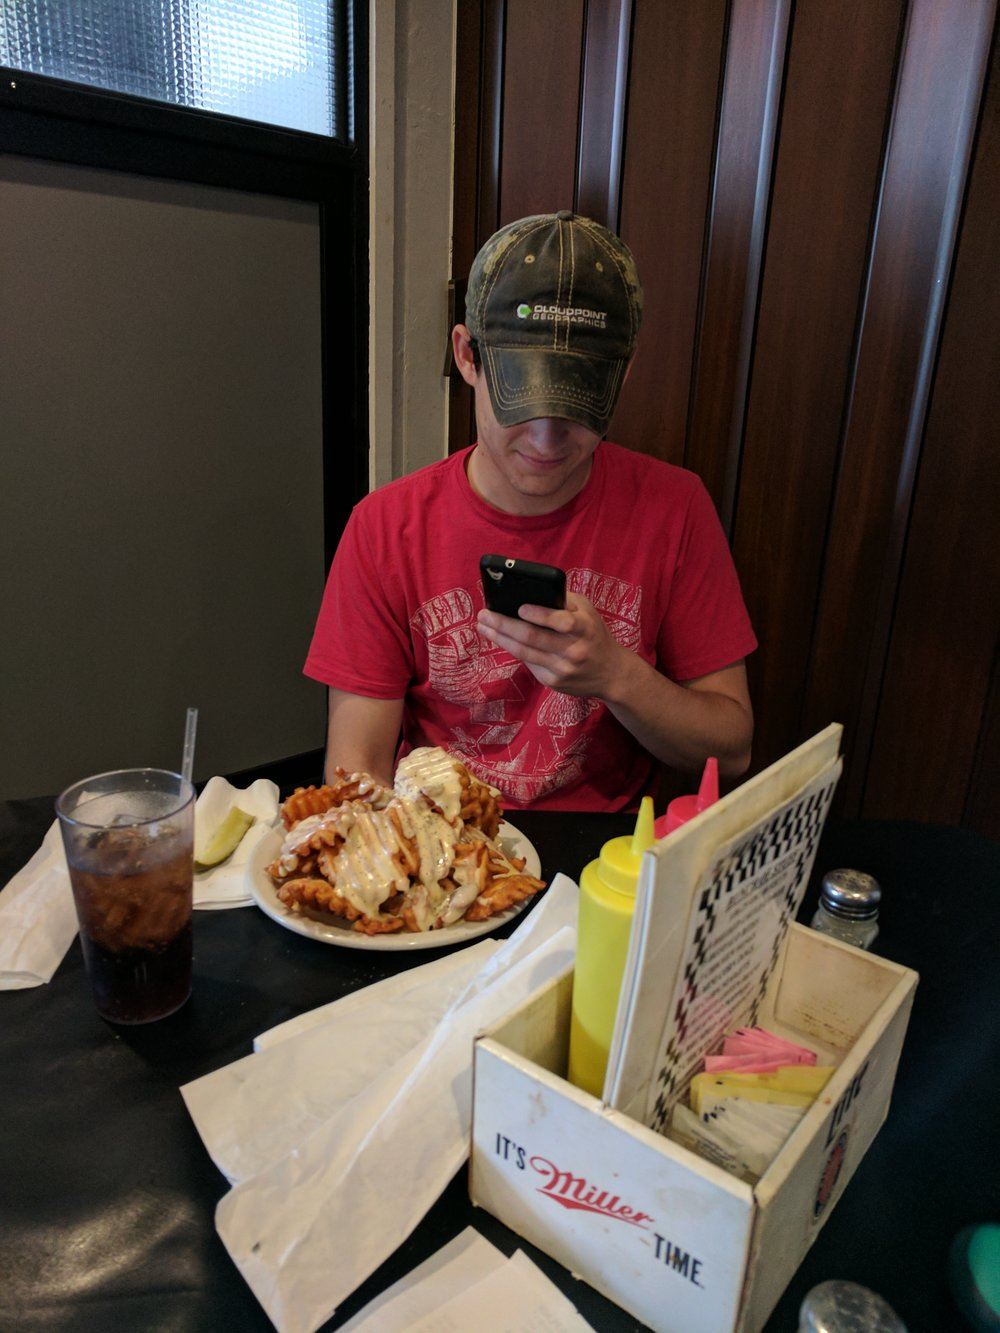 He ate the entire thing in less than 30 minute on more than one ocassion. Note the different shirt and table location.